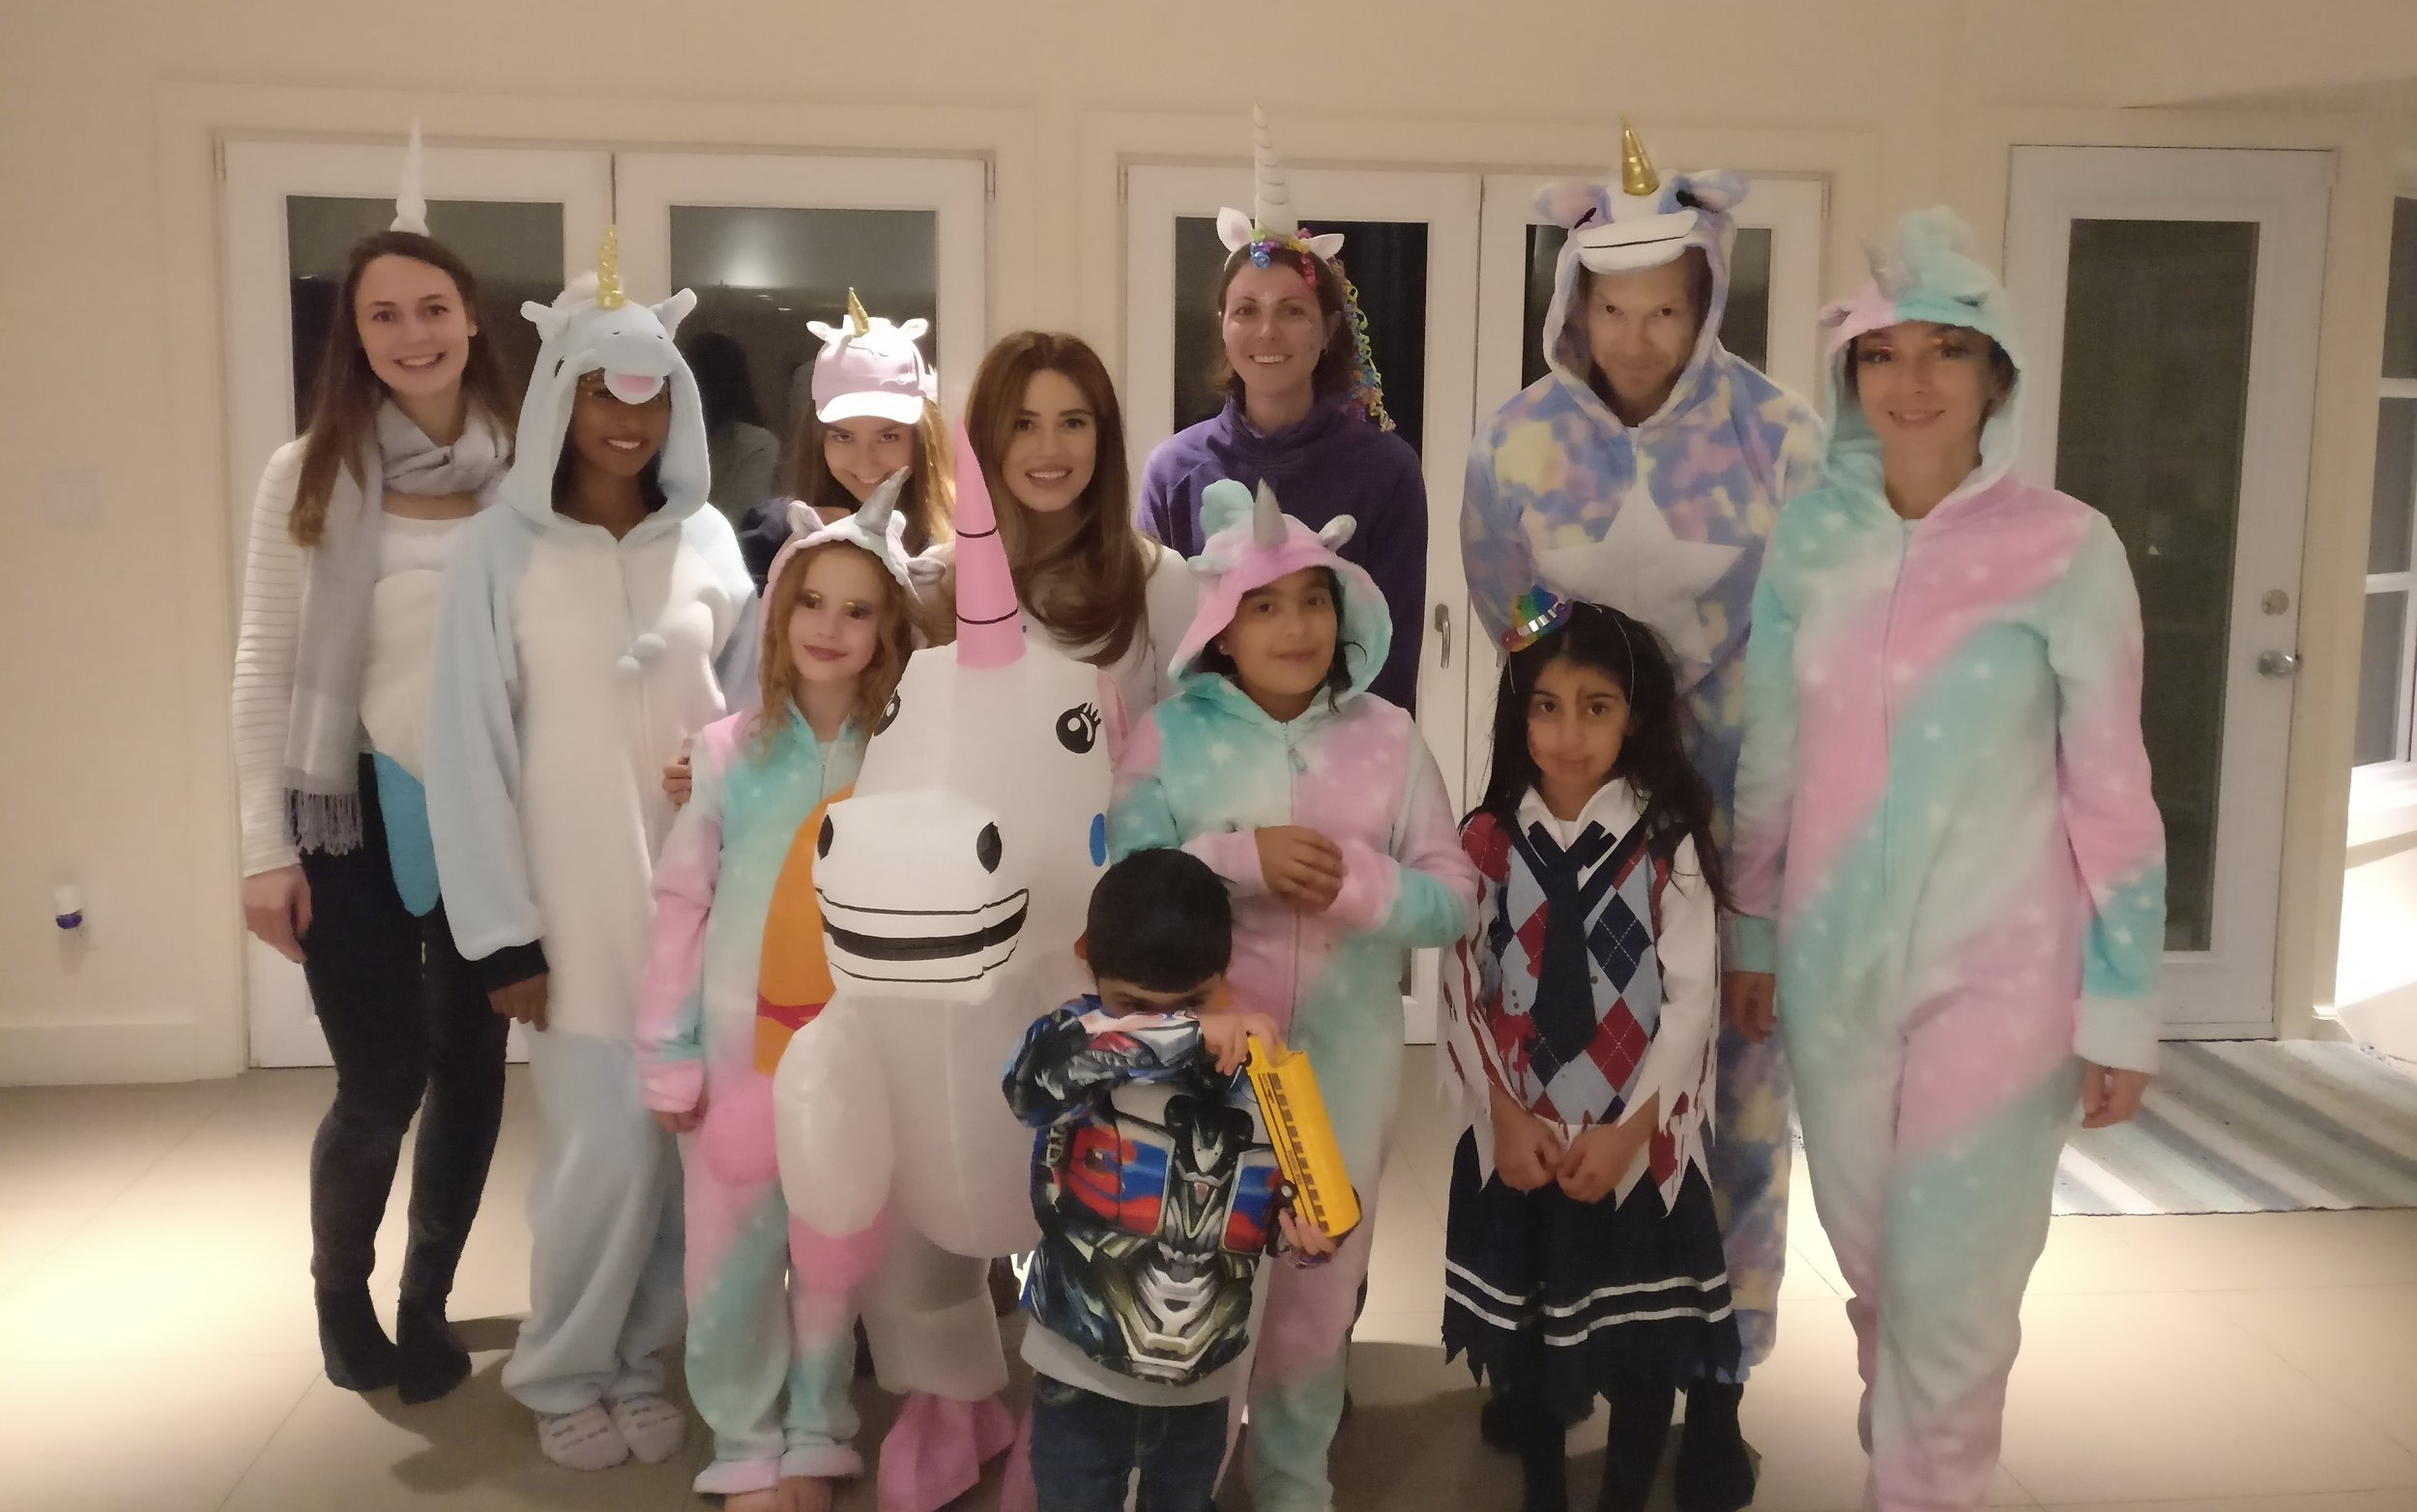 Unicorn theme Halloween party! Who wore it best?